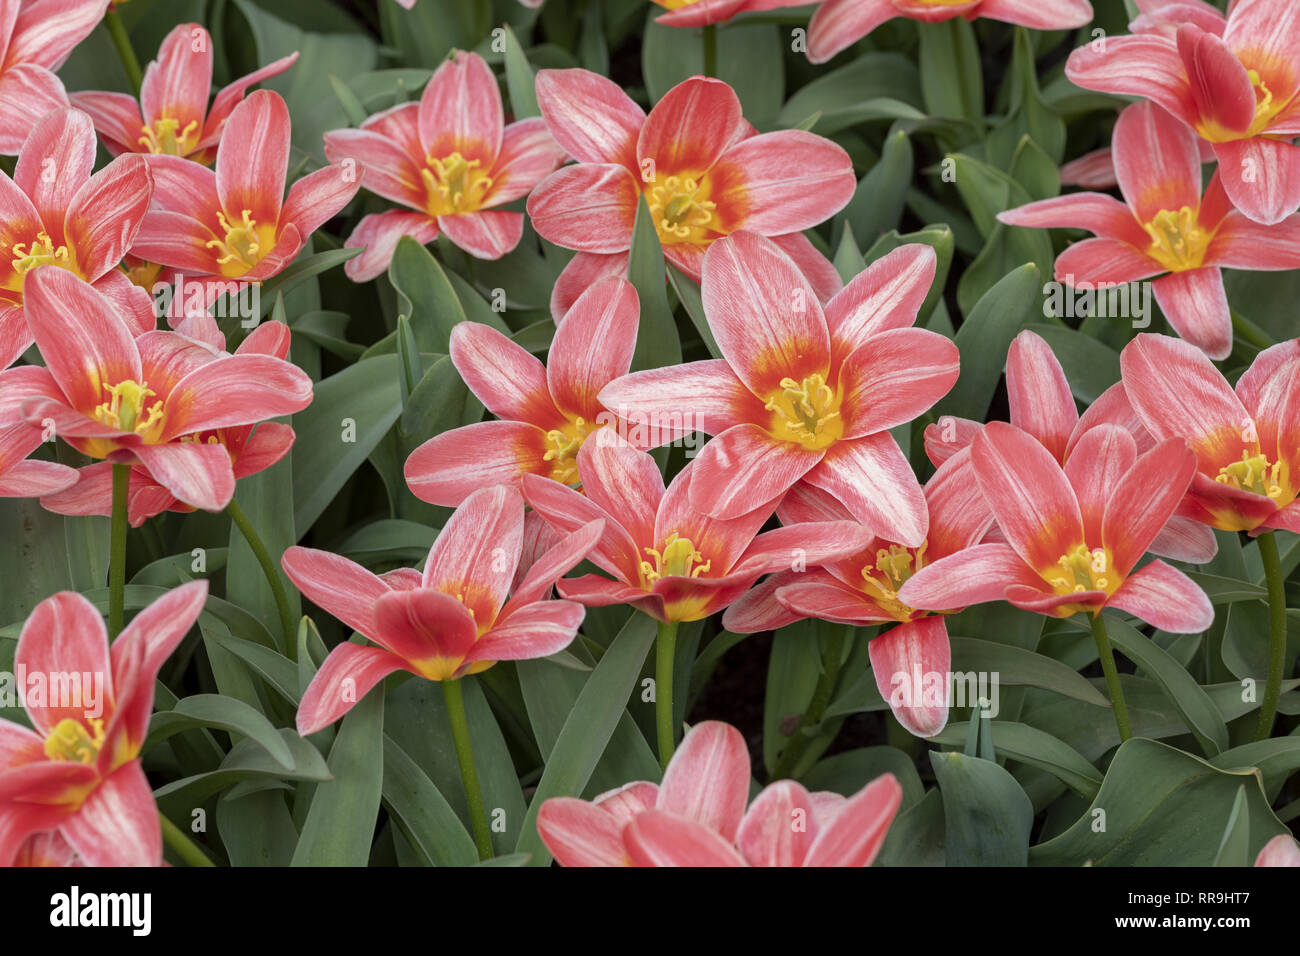 Derived from the Greek word 'leiron,' , the lily was so revered by the Greeks that they believed it sprouted from the milk of Hera, the queen of the g - Stock Image